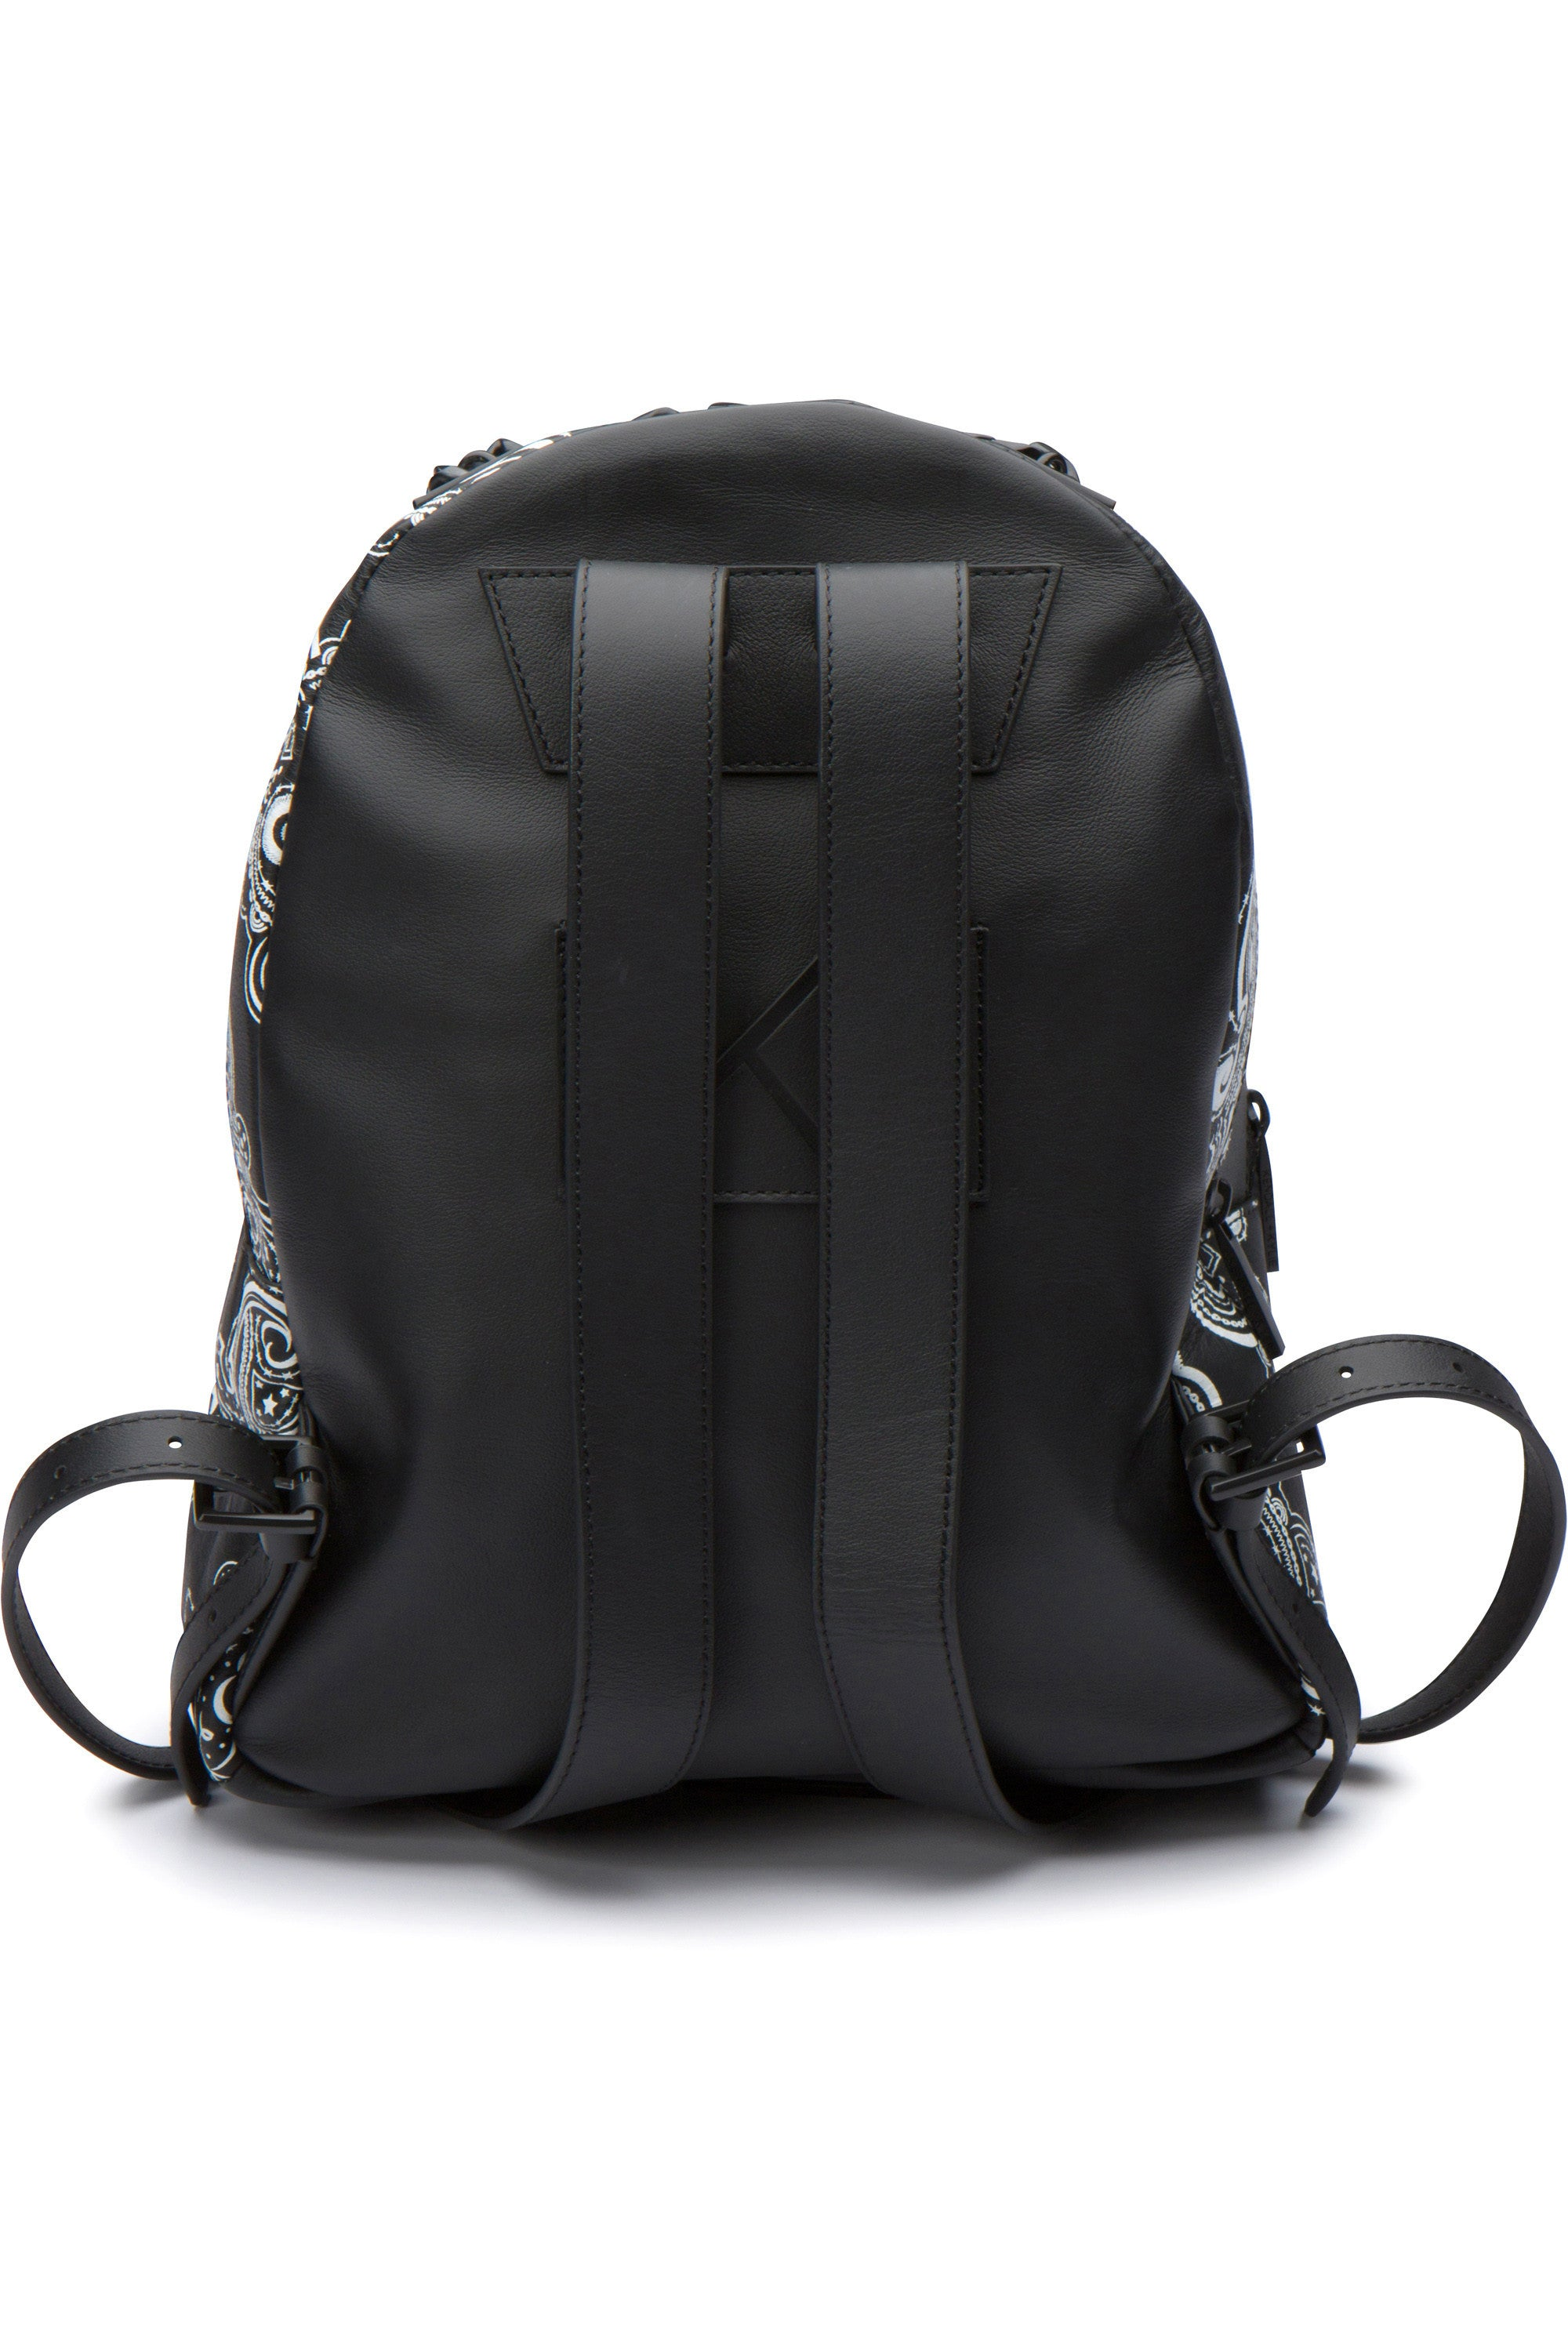 SLOANE BANDANA BACKPACK by Kendall and Kylie